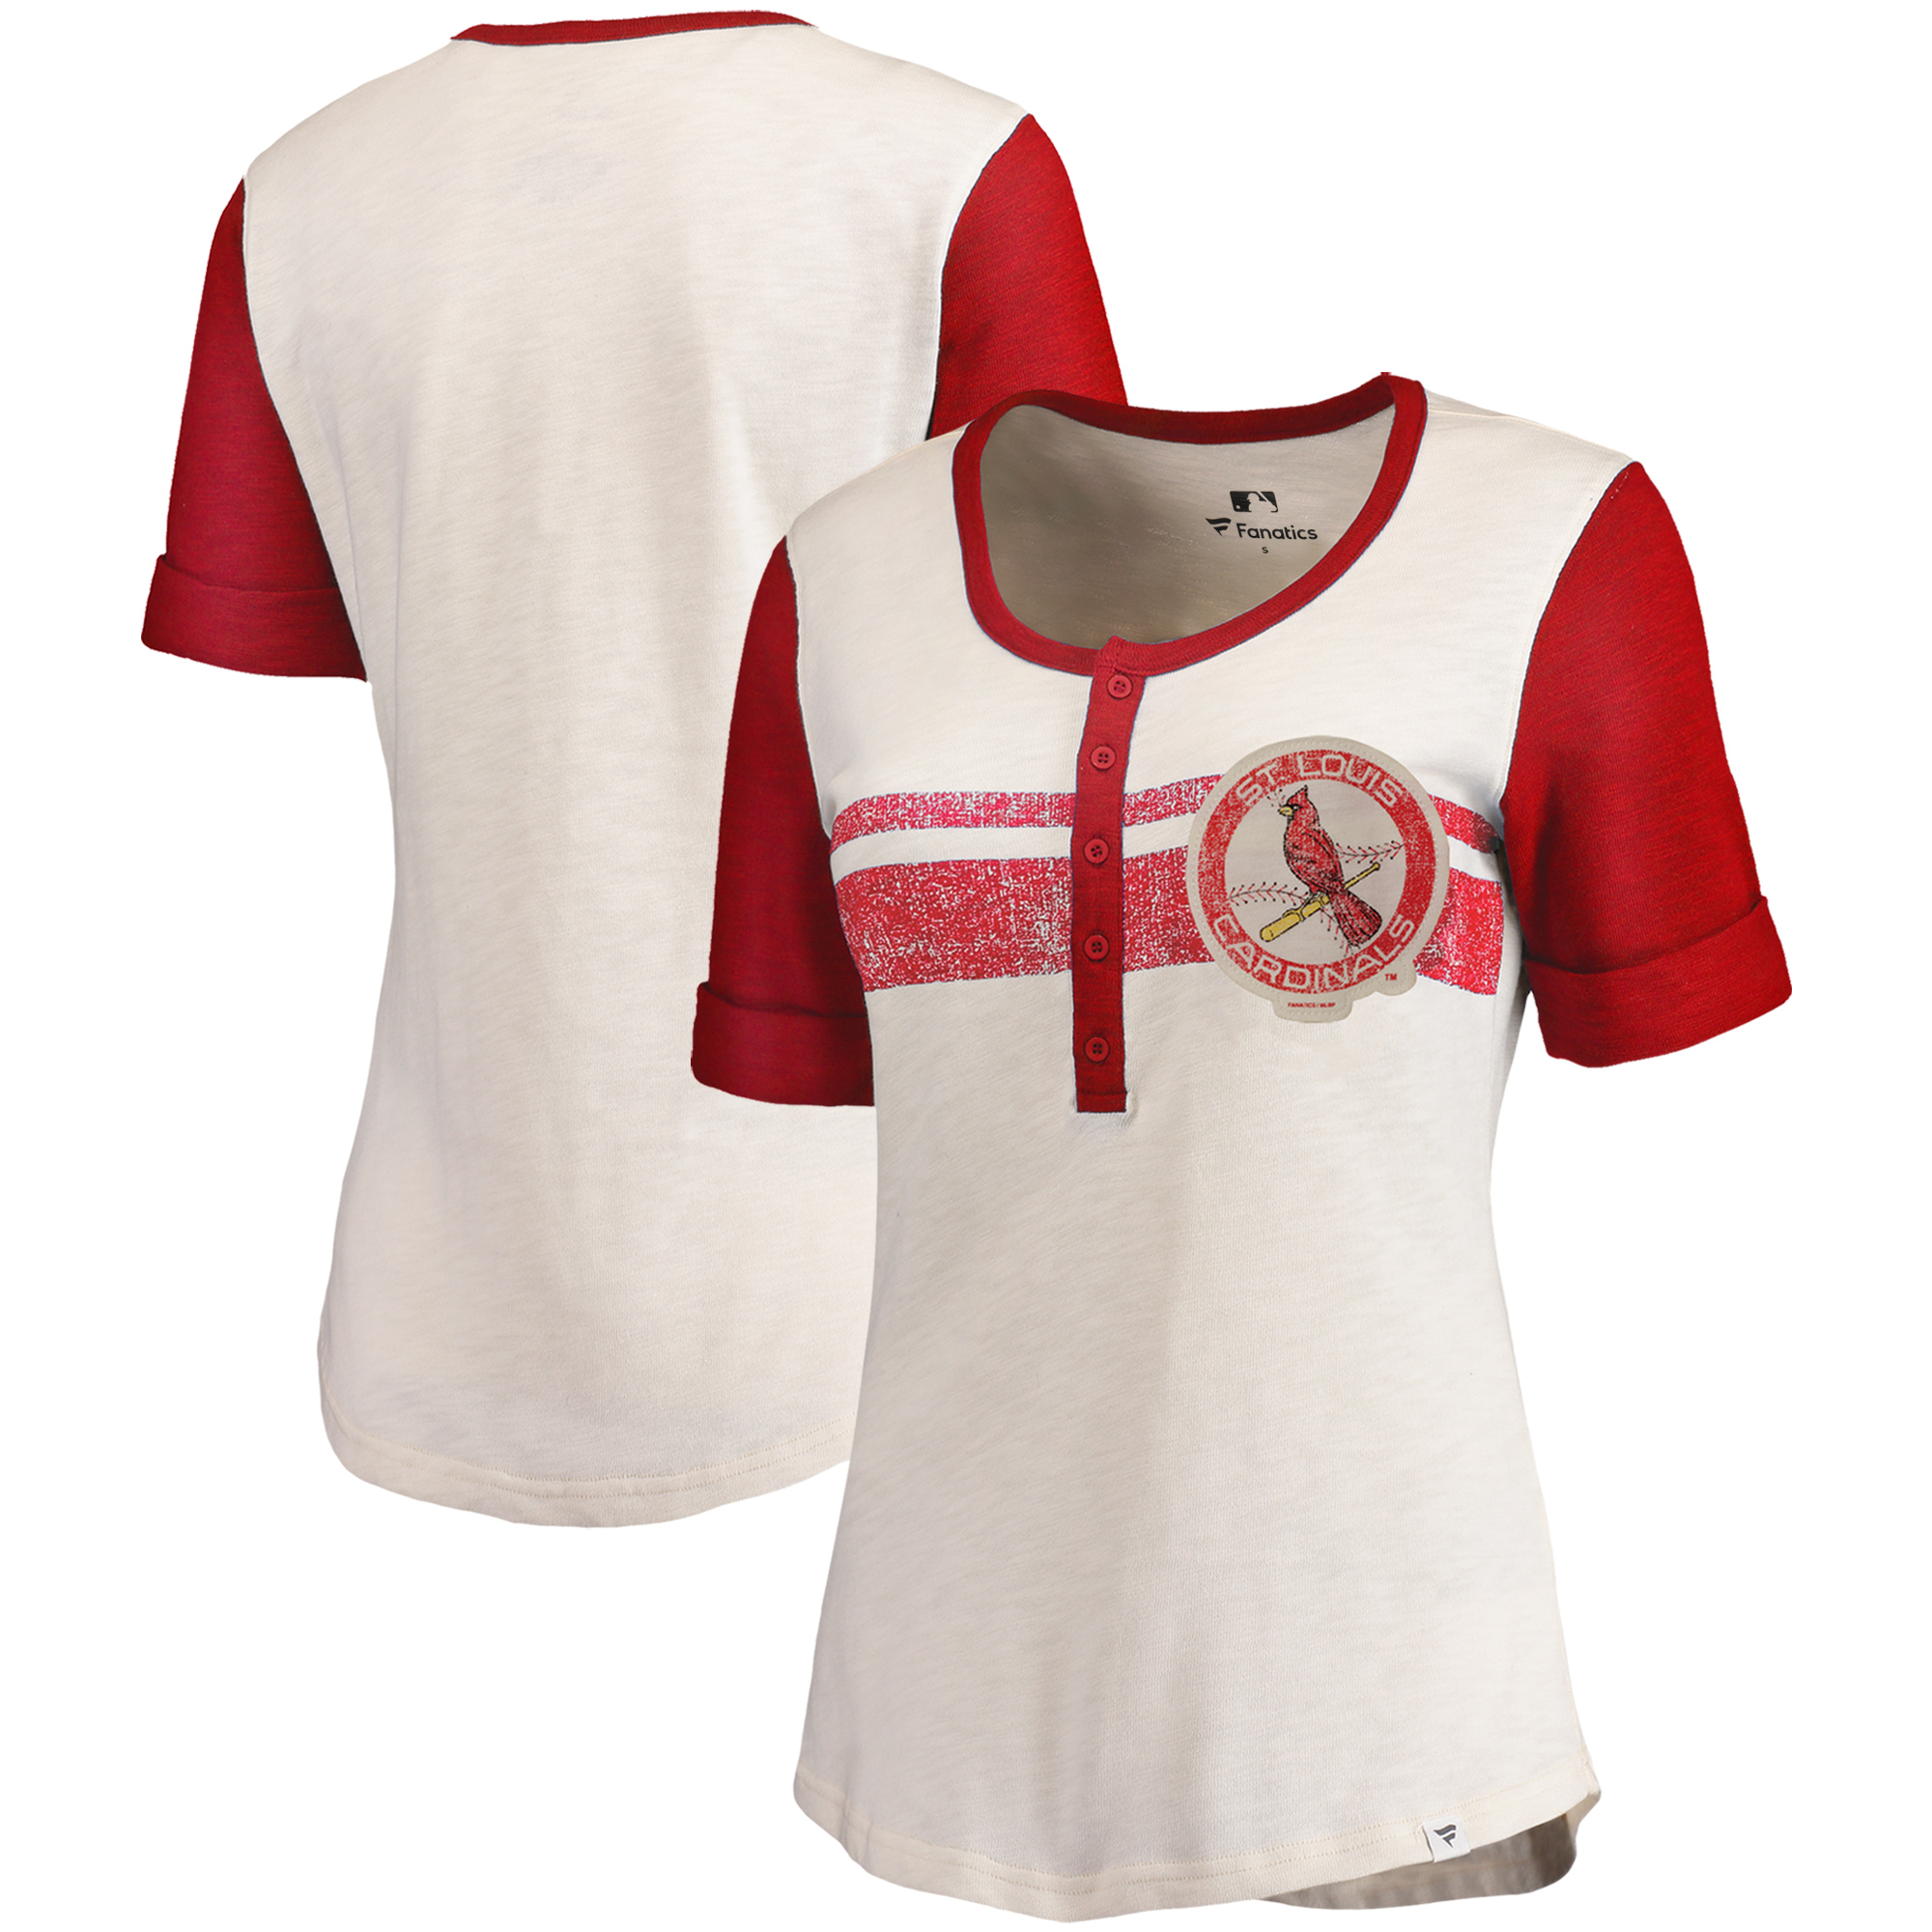 St. Louis Cardinals Fanatics Branded Women's True Classics Henley T-Shirt - Cream/Red